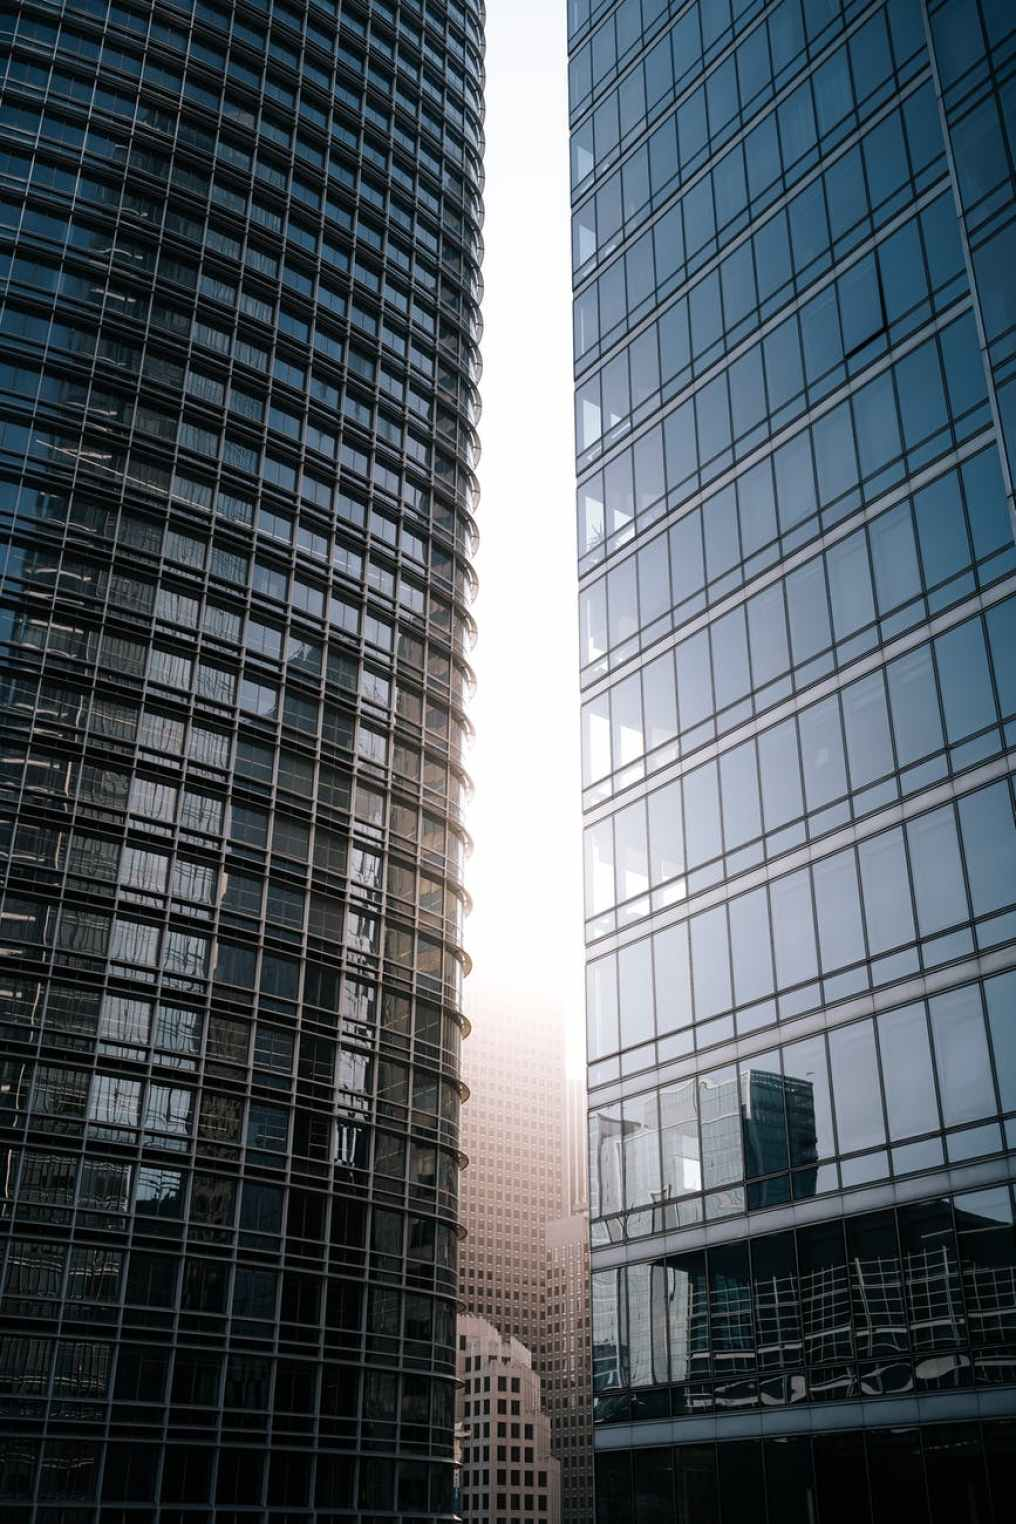 two high rise glass buildings